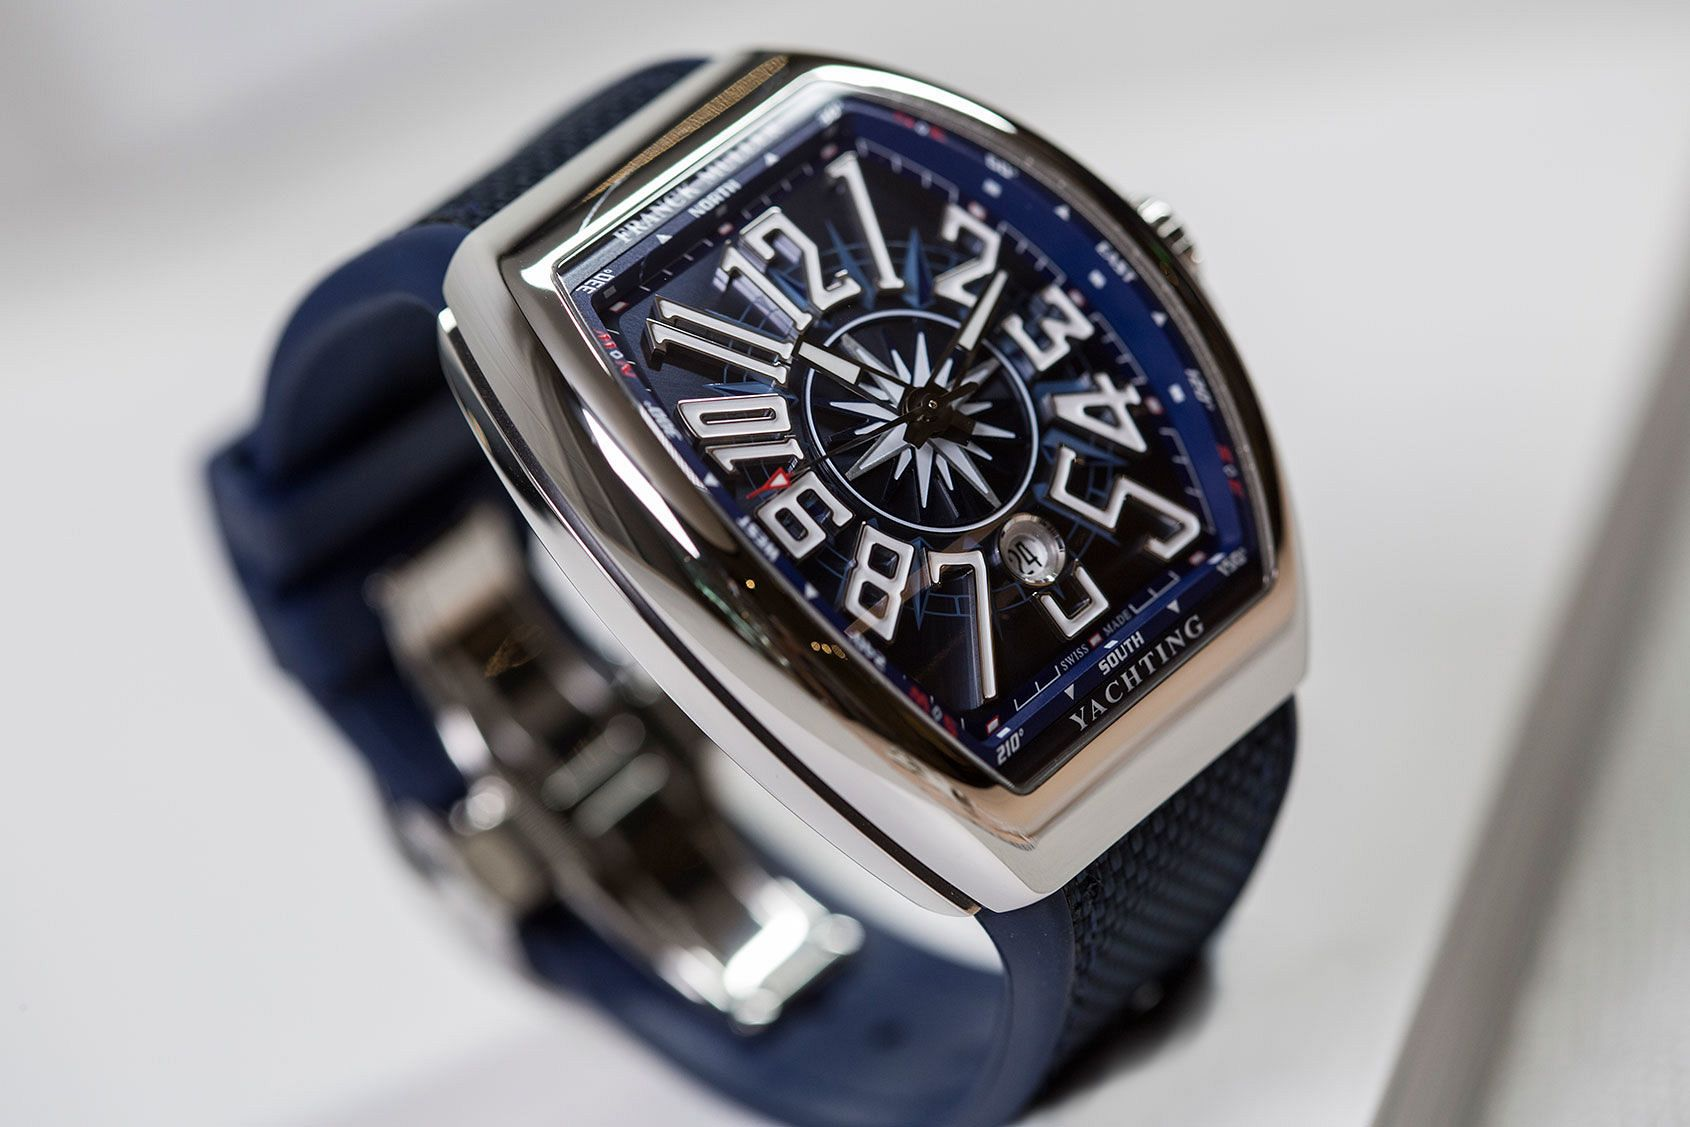 Franck Muller Vanguard Yachting copy watches